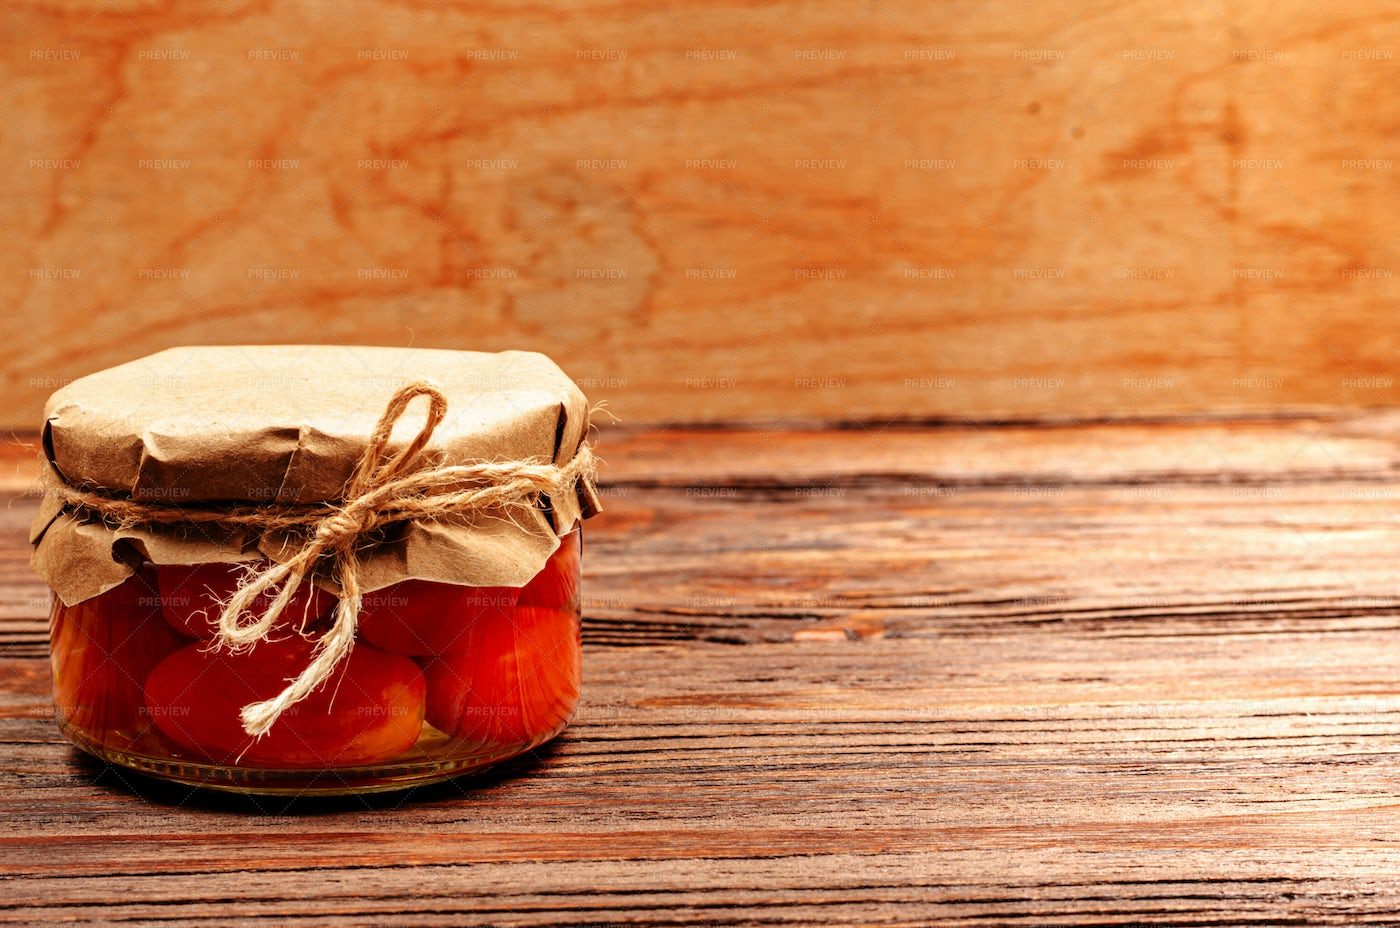 Canned Tomatoes In Jar: Stock Photos